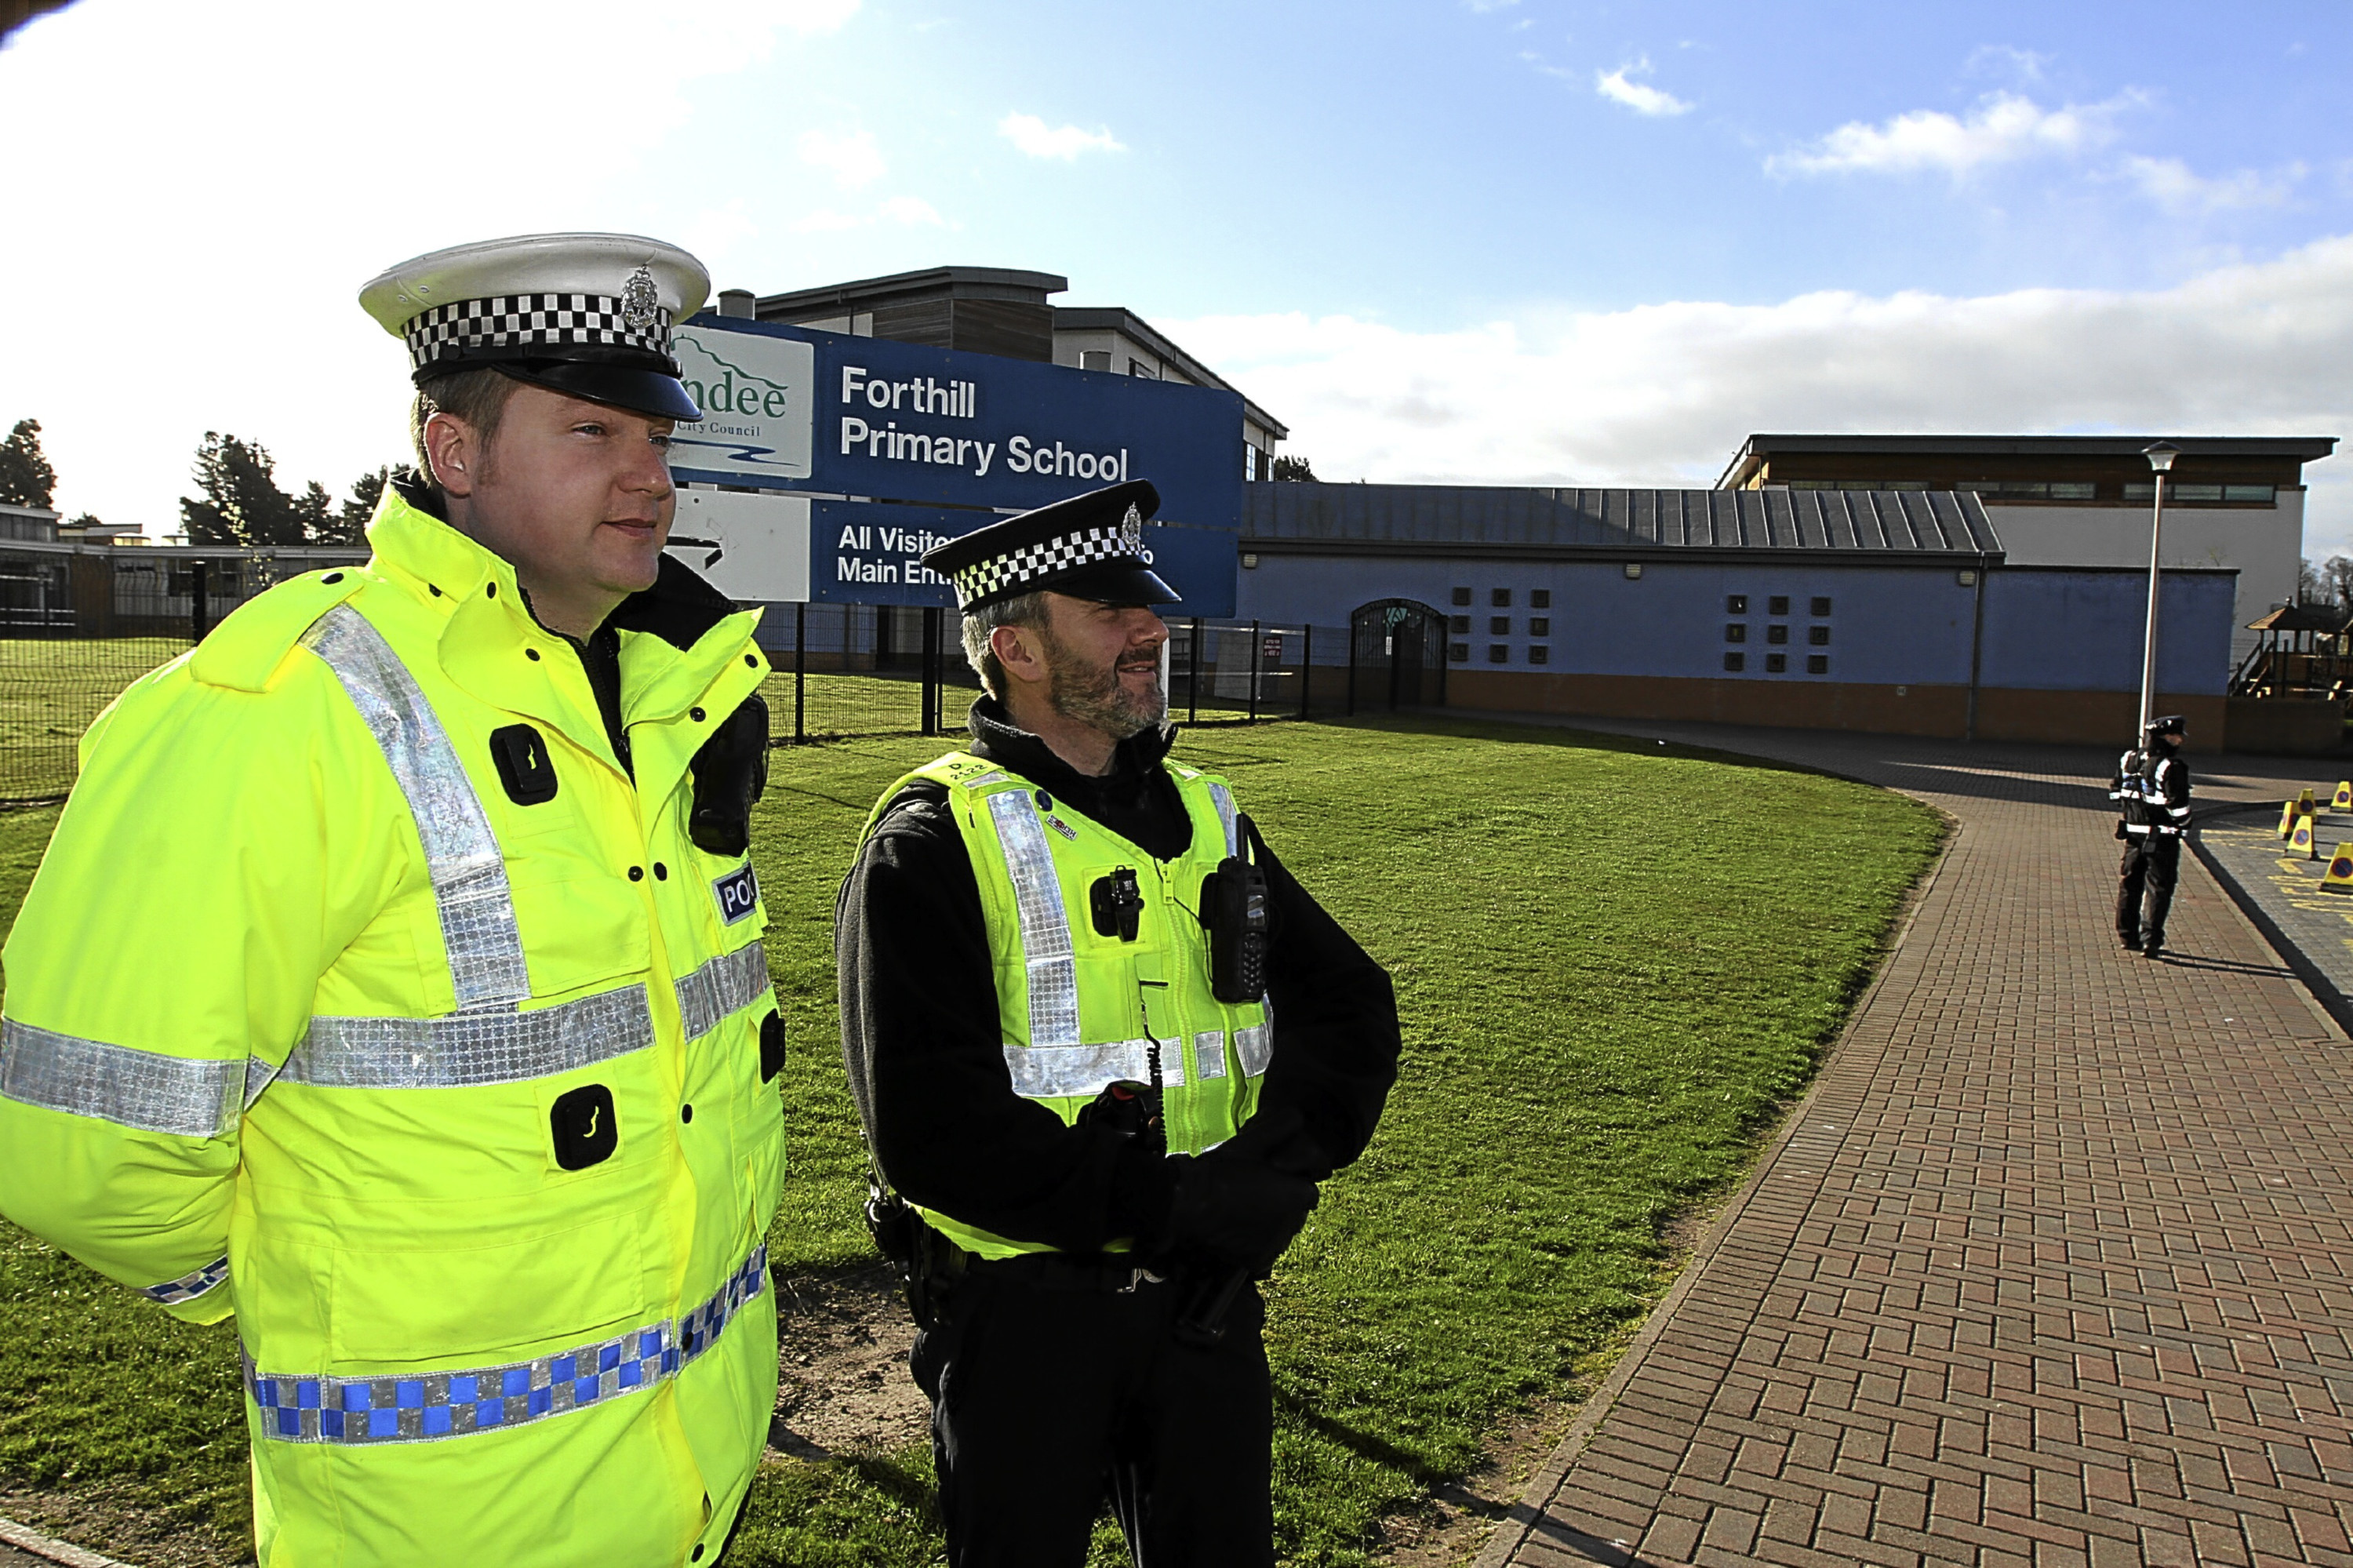 PC Gordon Dickson of the Road Policing Unit, with PC Darren Banister, Broughty Ferry Community Policeman,outside Forthill primary school to check on parking habits by parents in a previous police visit.